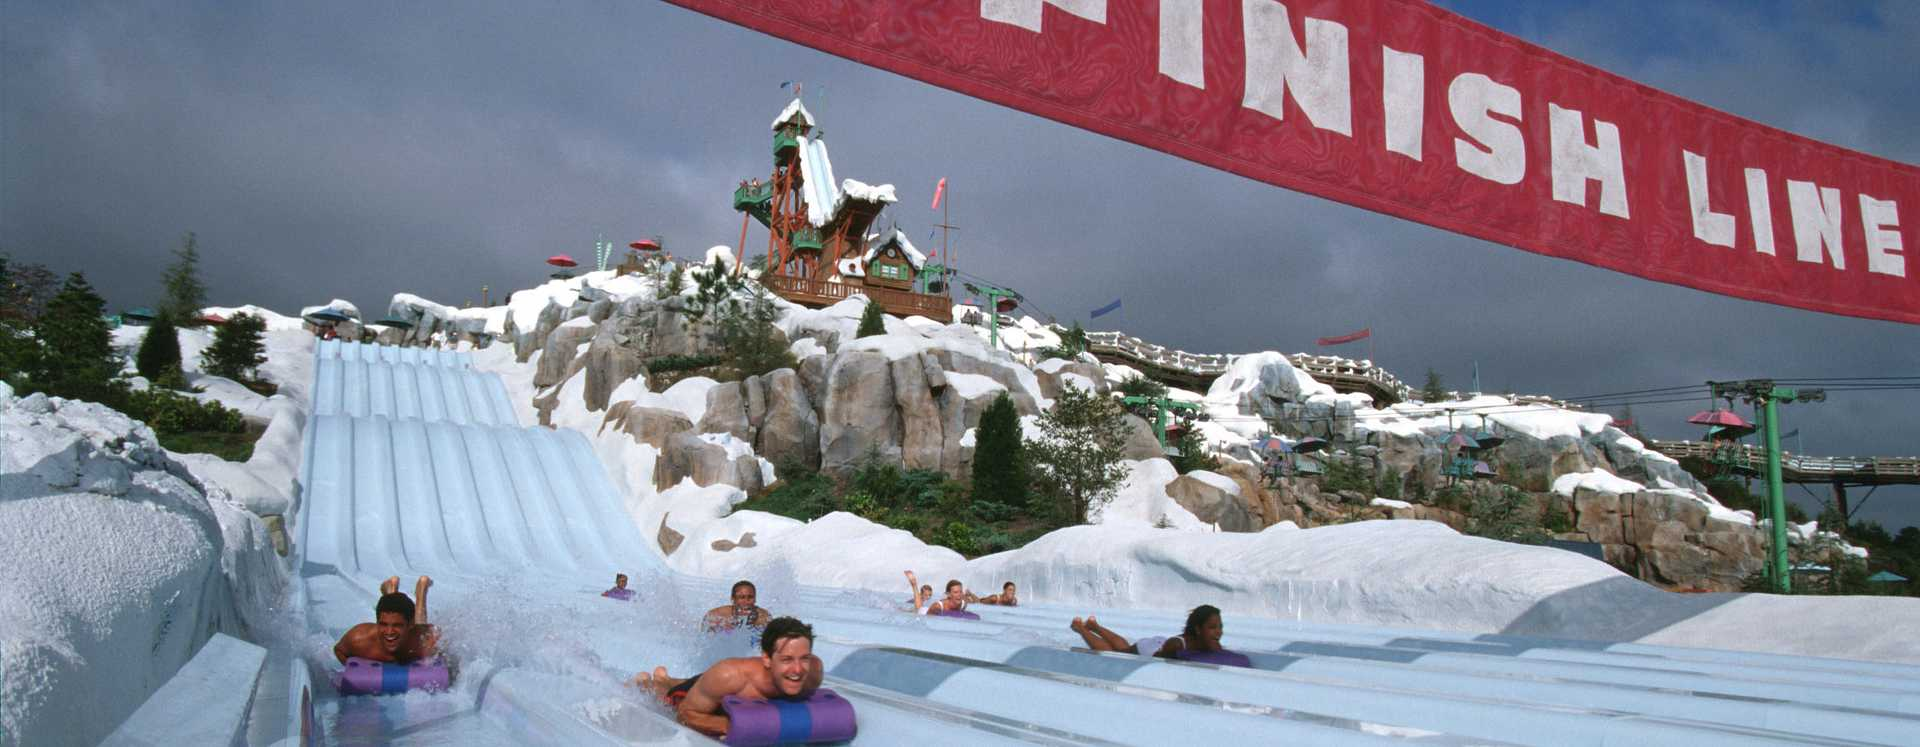 Multiple people sliding down on a race to the finish line of a water slide at Disney's Blizzard Beach